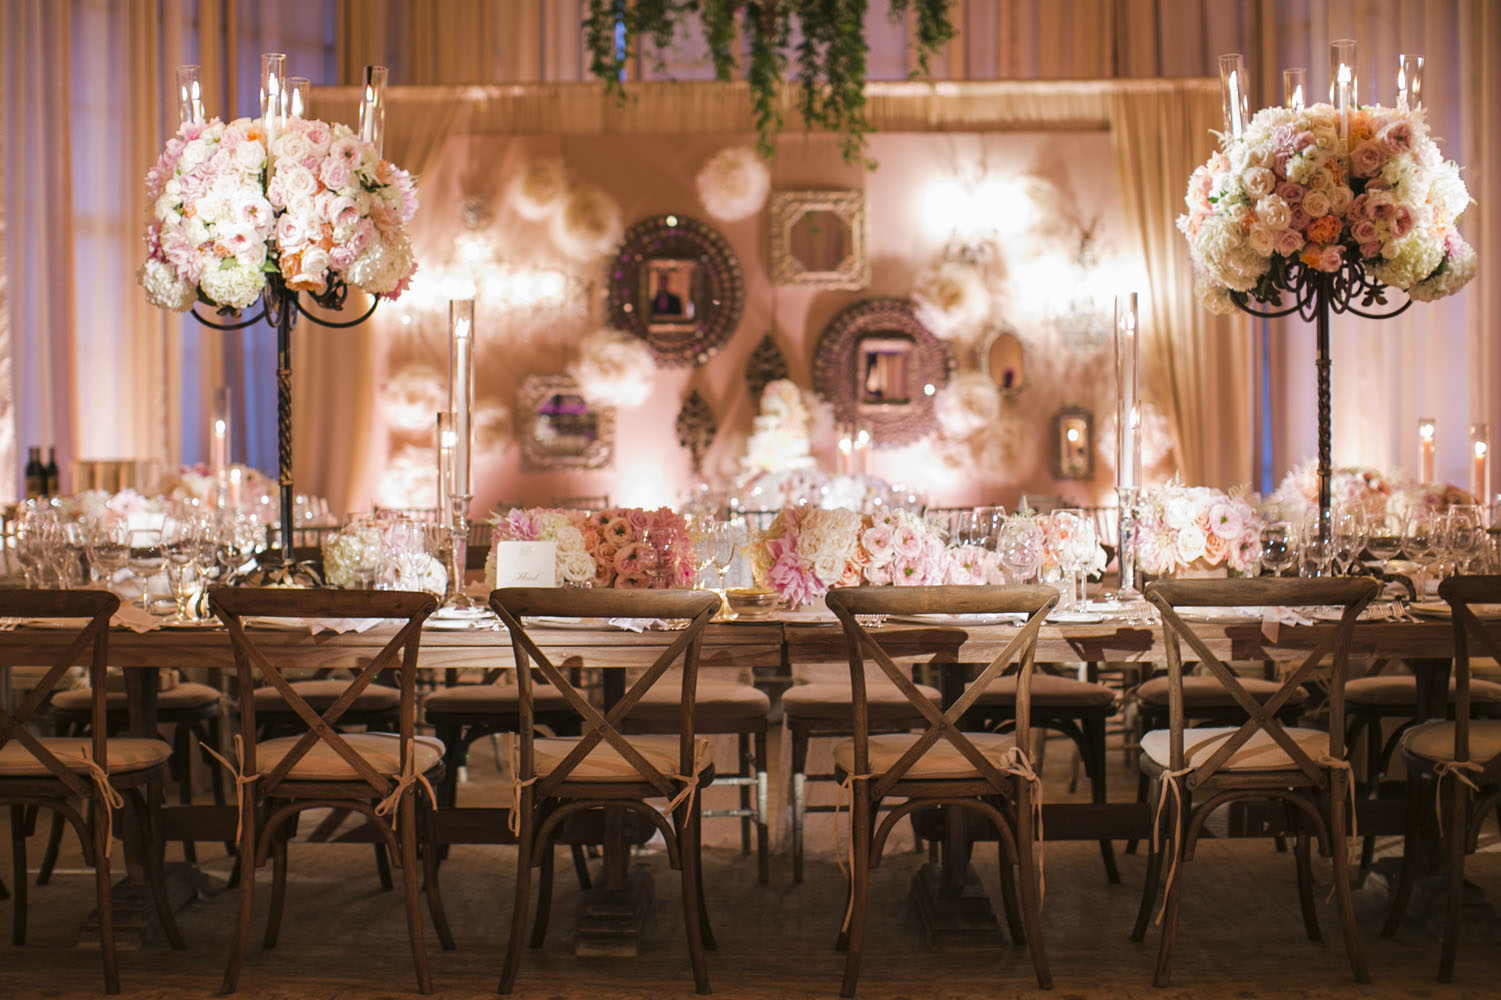 Vintage-Reception-Decor-With-Pink-and-Cream-Roses